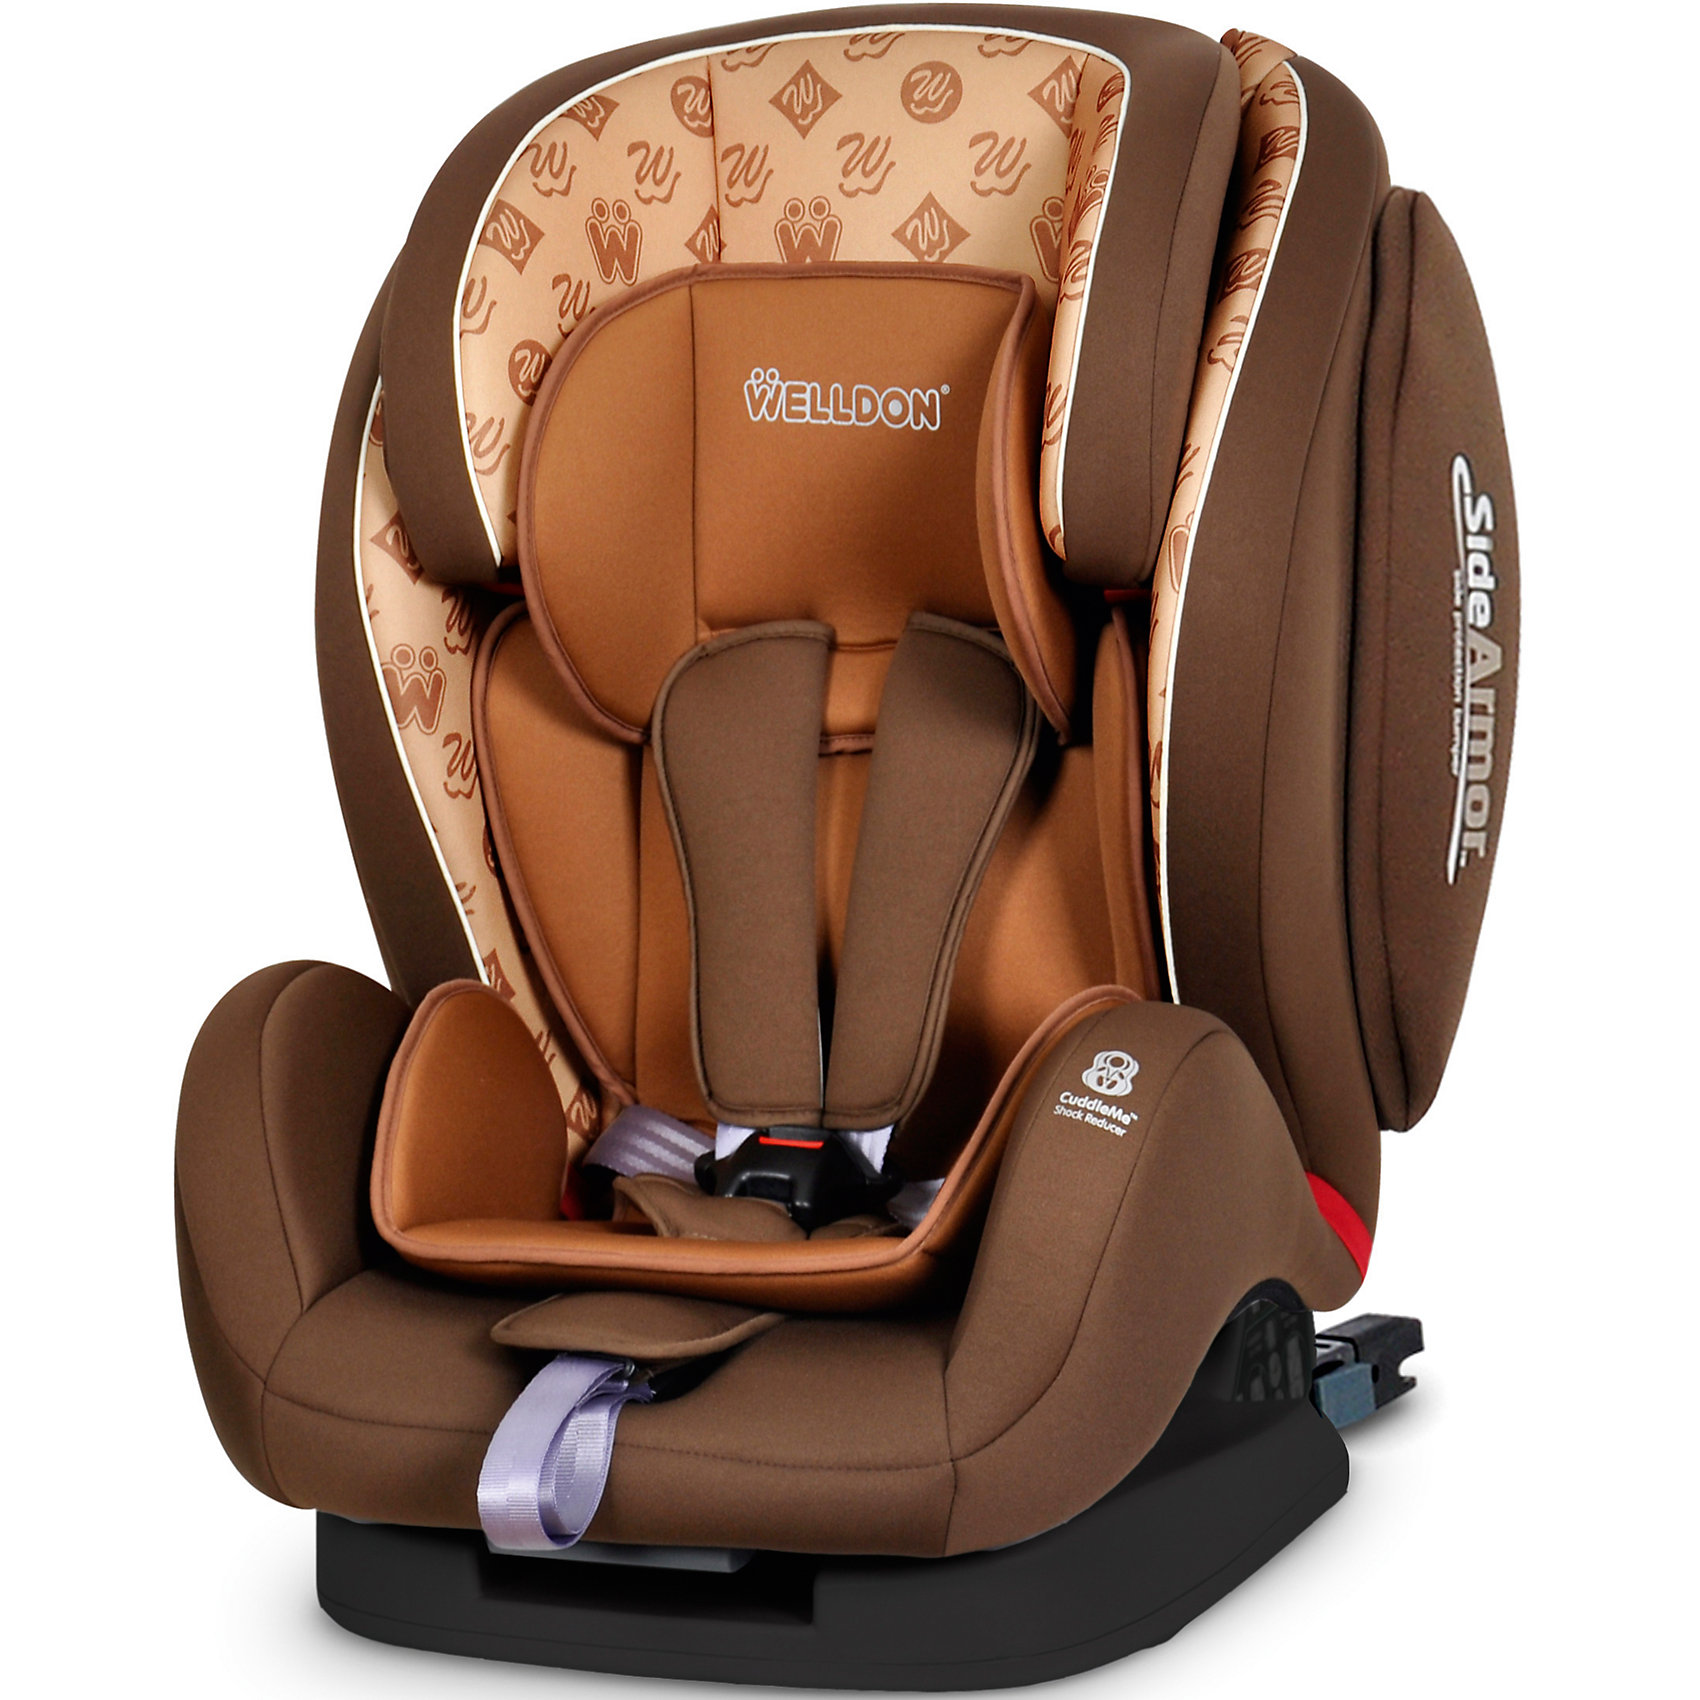 Welldon Автокресло Encore Fit SideArmor & CuddleMe ISO-FIX, 9-36 кг., Welldon, Hallmarks Brown группа 1 2 3 от 9 до 36 кг welldon encore fit